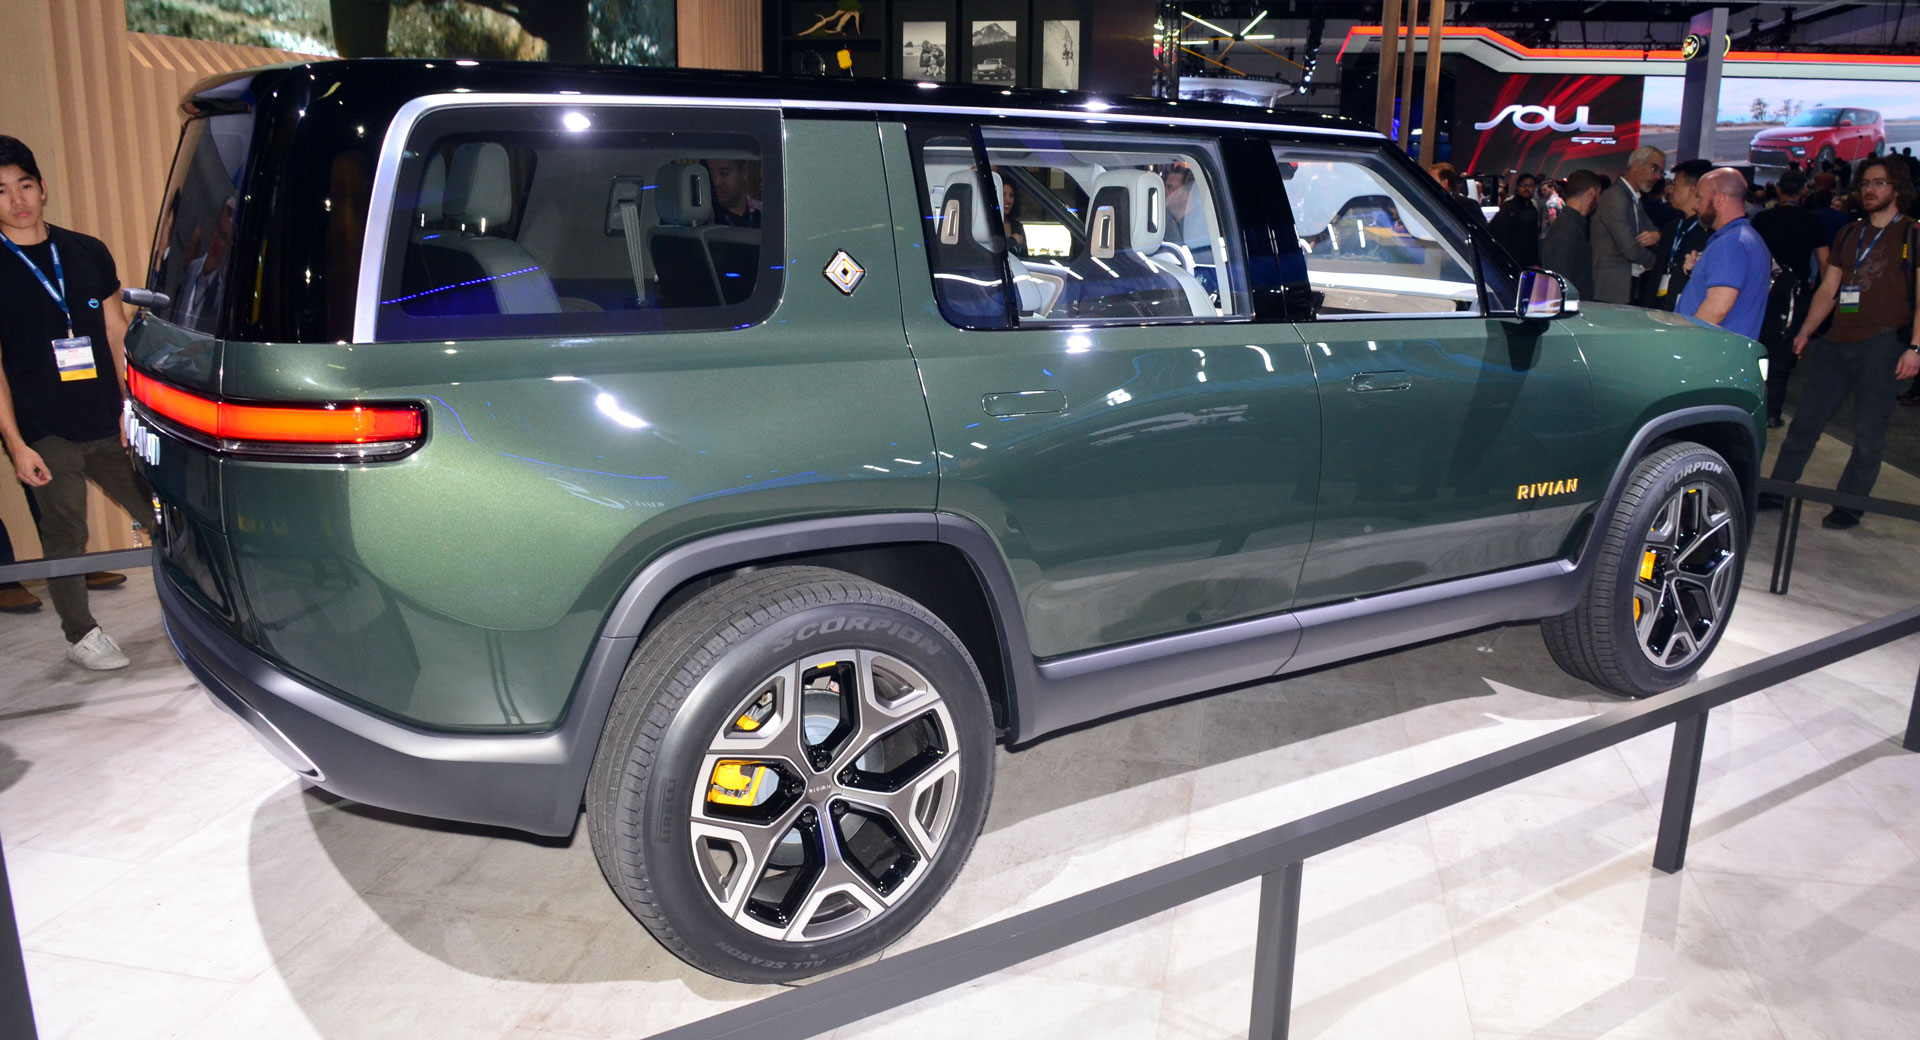 7 Seater Electric Car Rivian R1s Suv Is A 7 Seater Electric Suv With A Range In